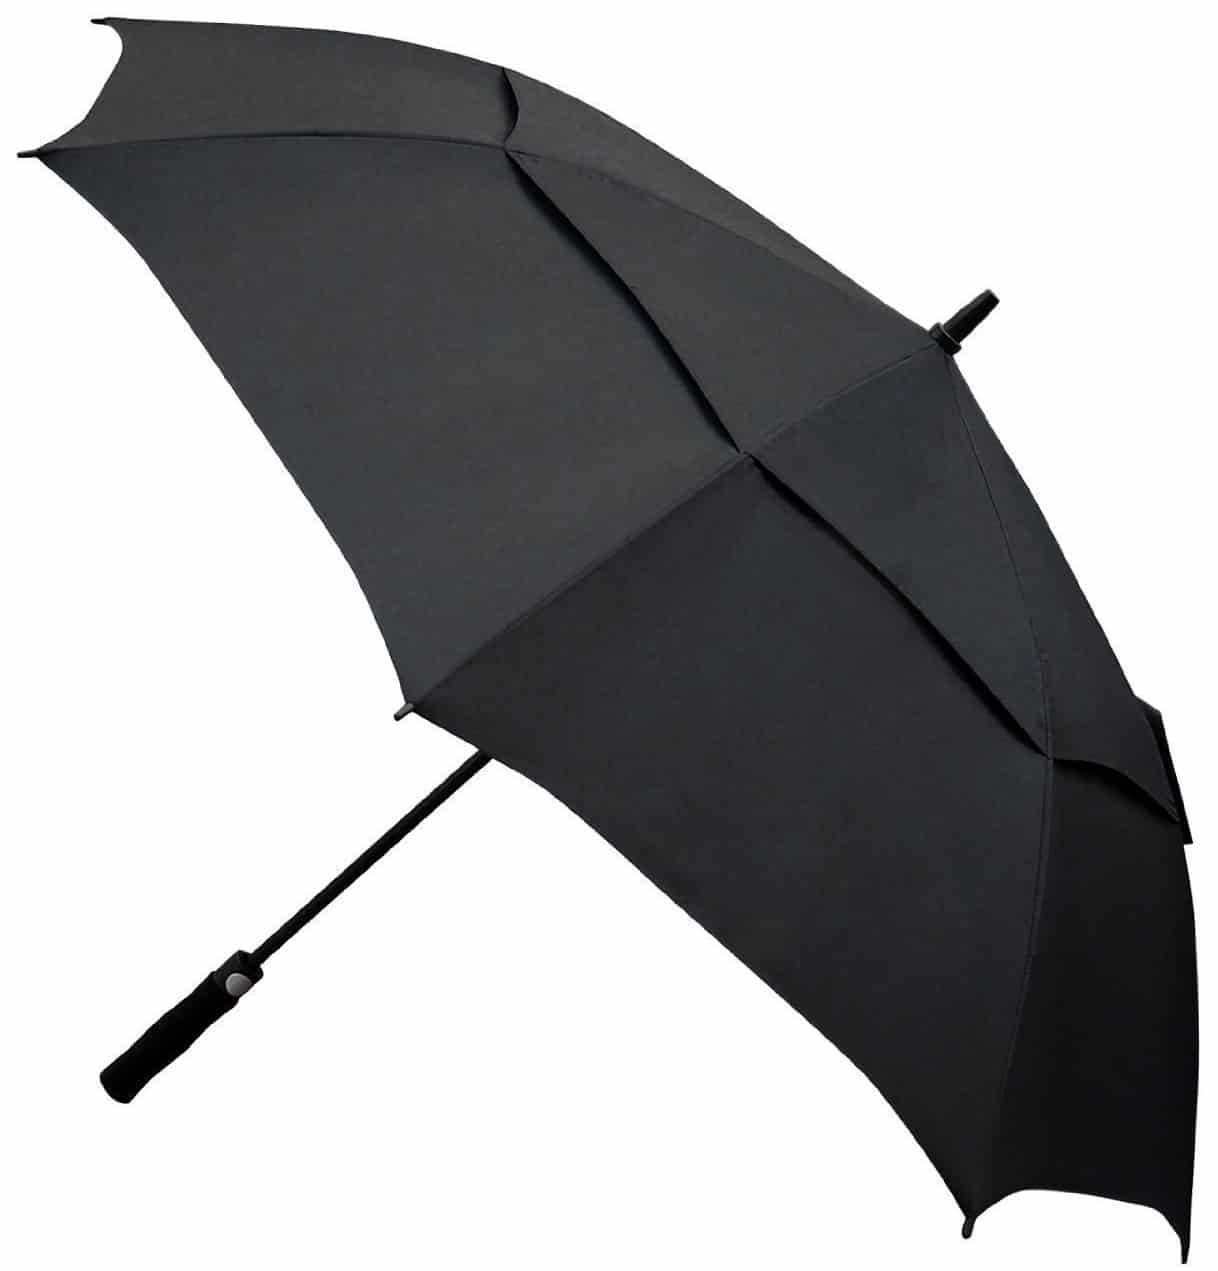 Most Strong Umbrella – Atree